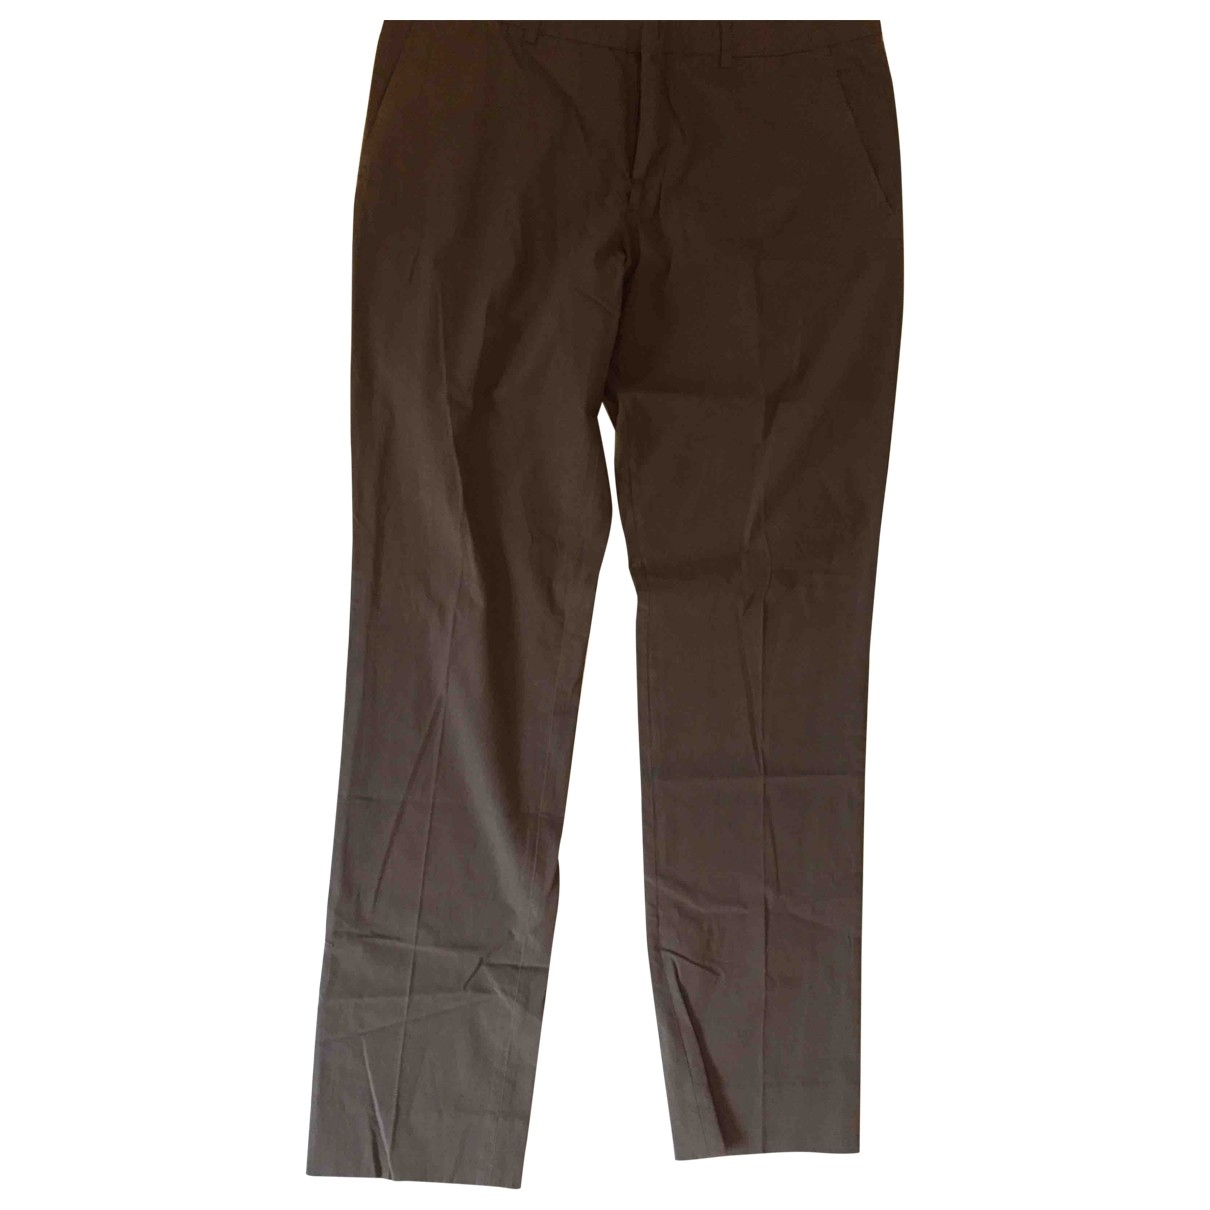 J.lindeberg \N Brown Cotton Trousers for Men 52 IT